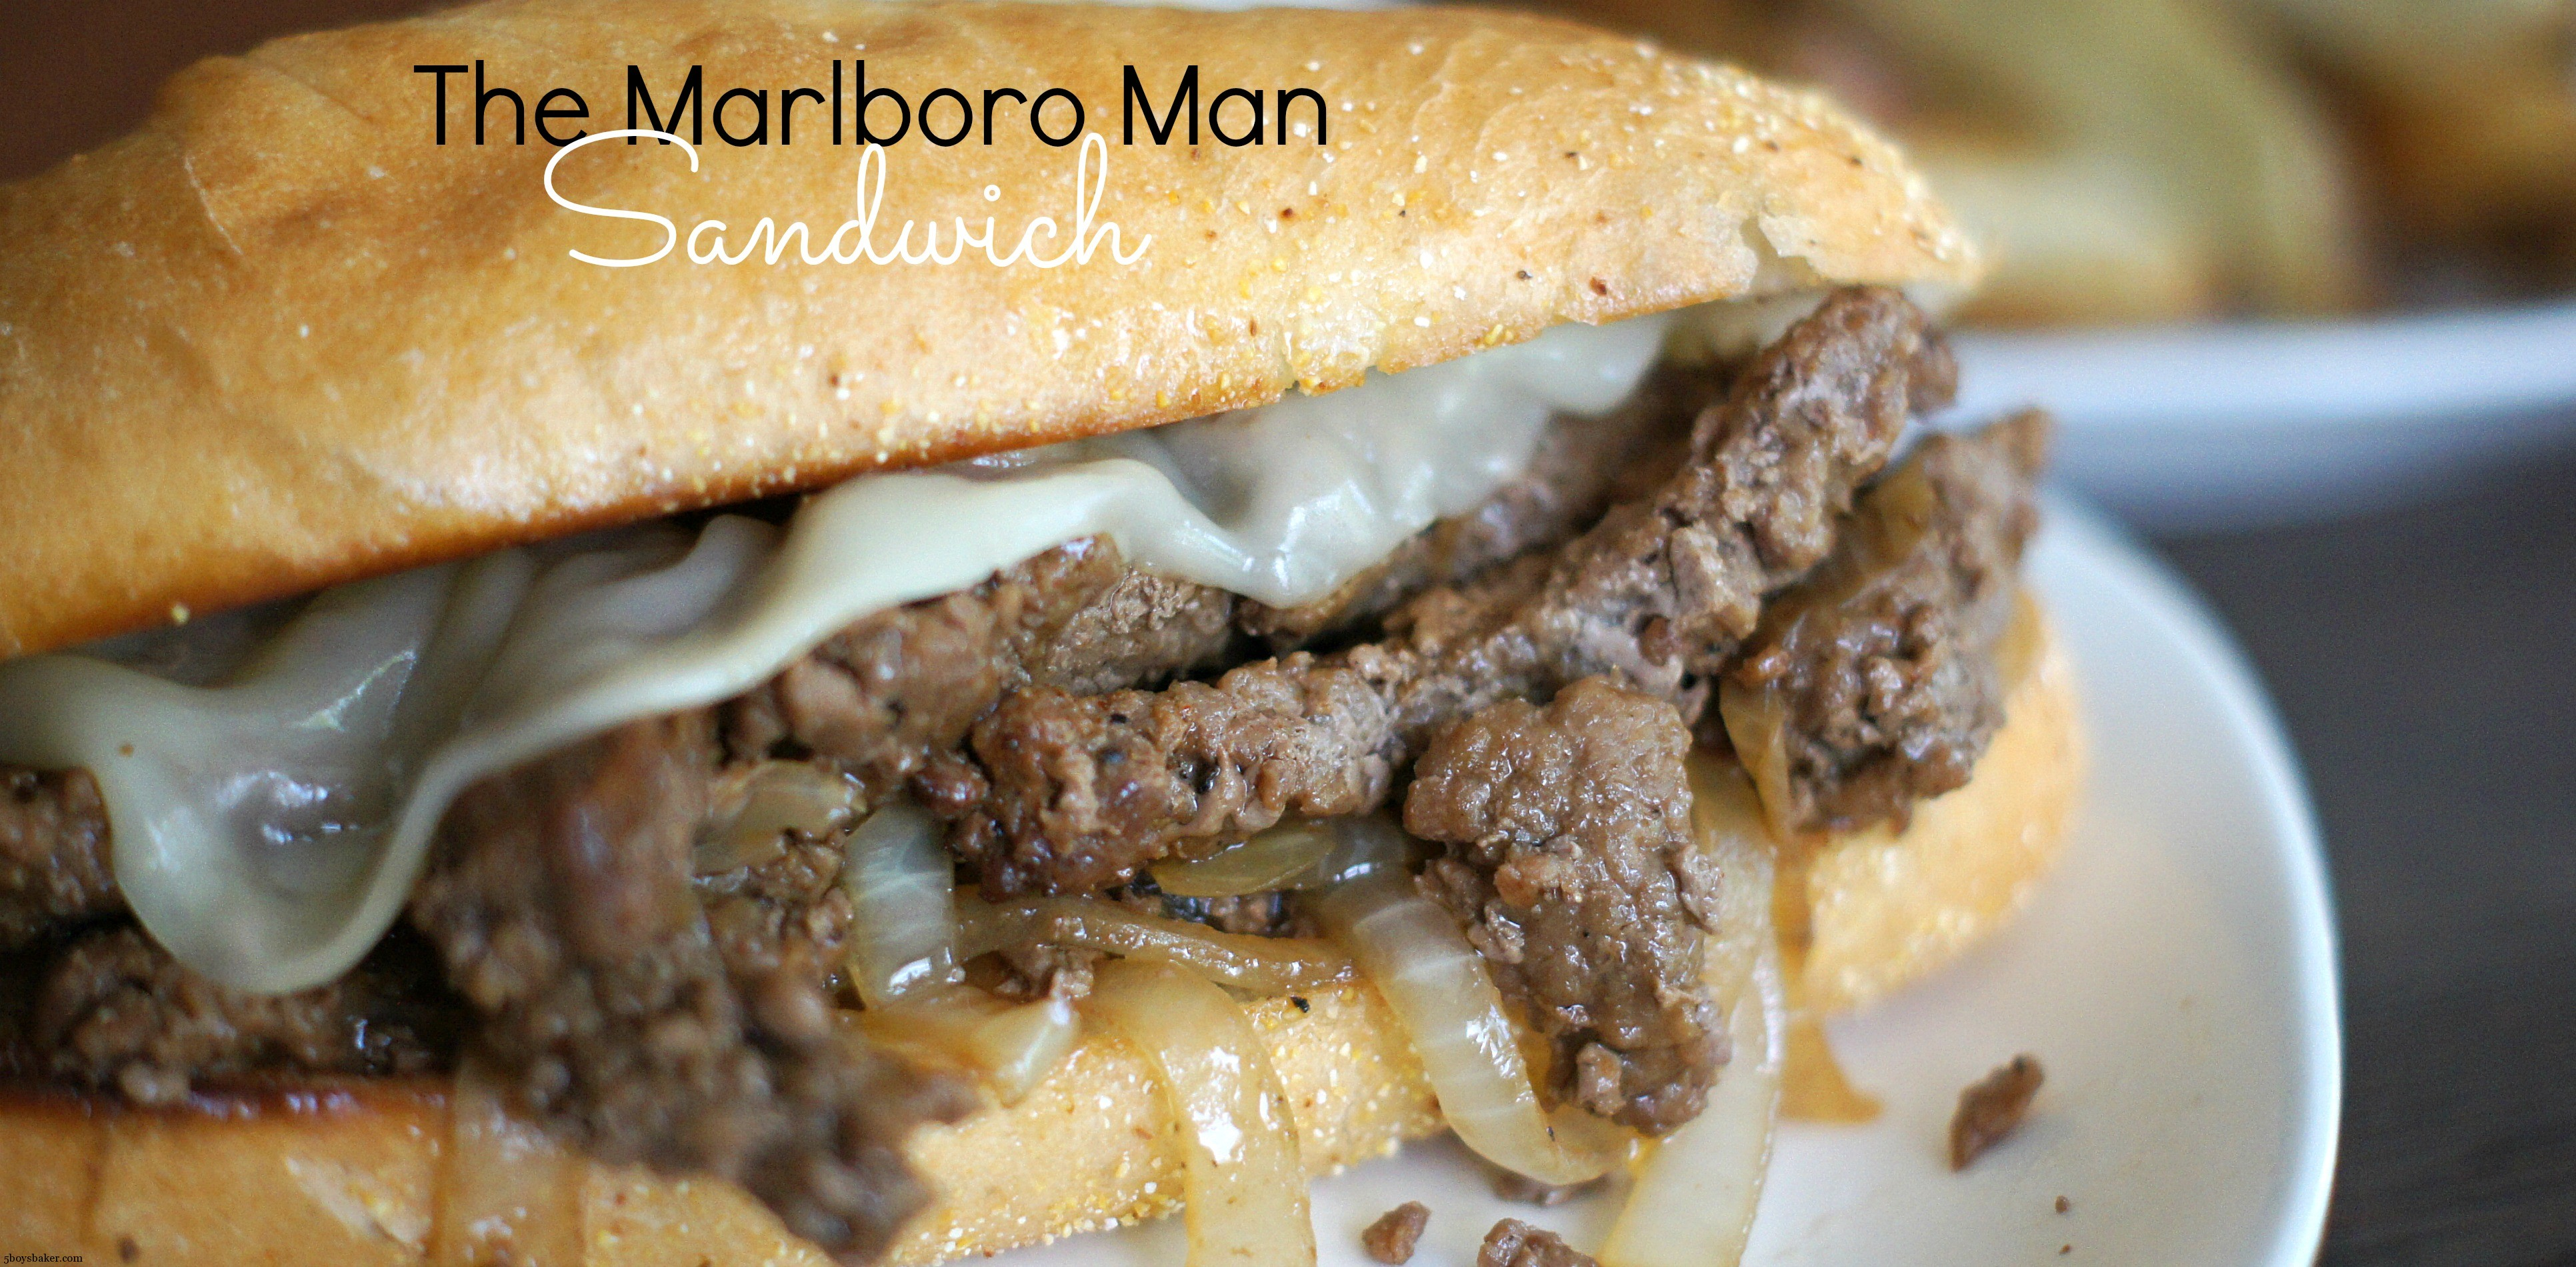 The Marlboro Man Sandwich - 5 Boys Baker